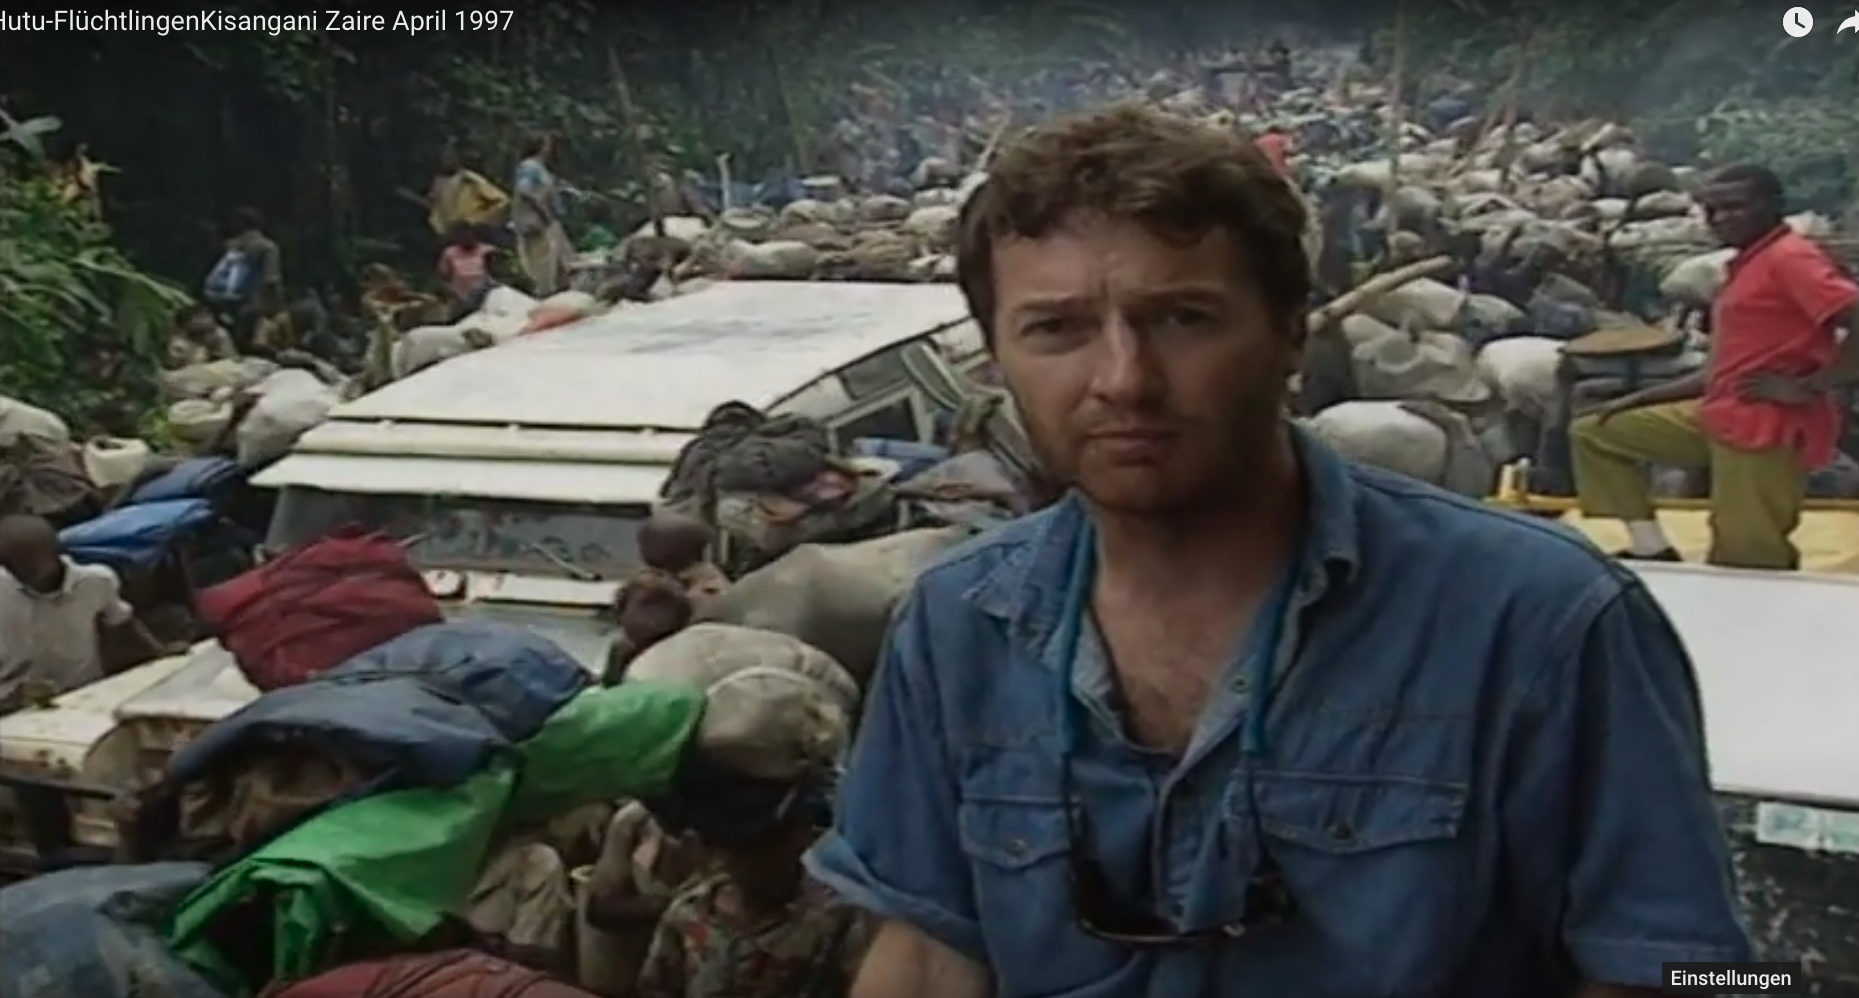 Andrea Müller Reporting from Kisangani 1996